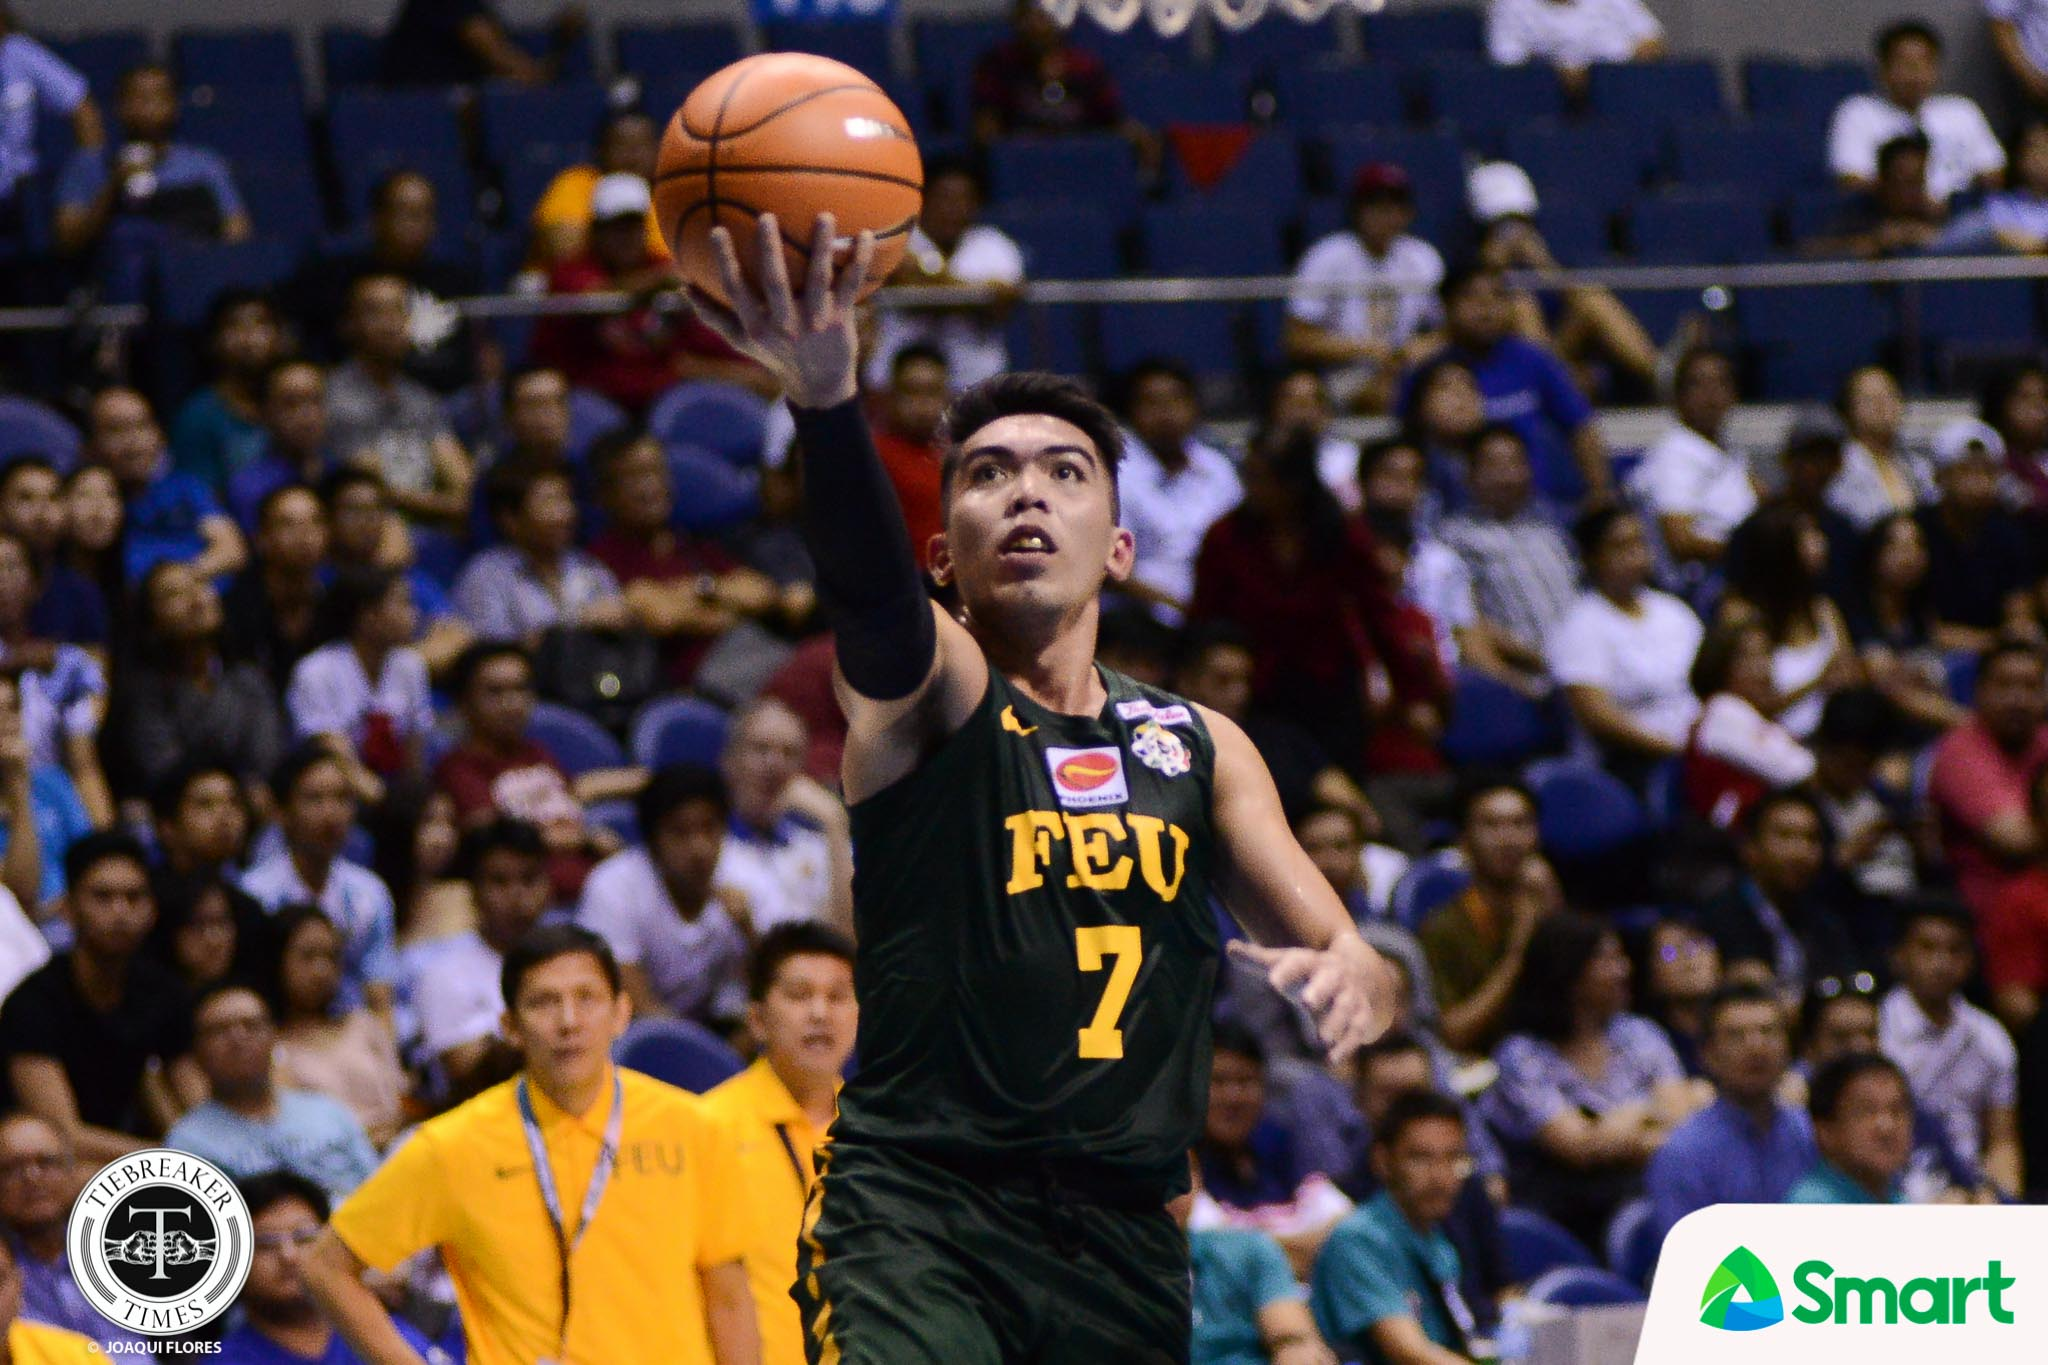 Philippine Sports News - Tiebreaker Times Ron Dennison shows entire repertoire in last year of duty Basketball FEU News UAAP  UAAP Season 80 Men's Basketball UAAP Season 80 Ron Dennison Olsen Racela FEU Men's Basketball